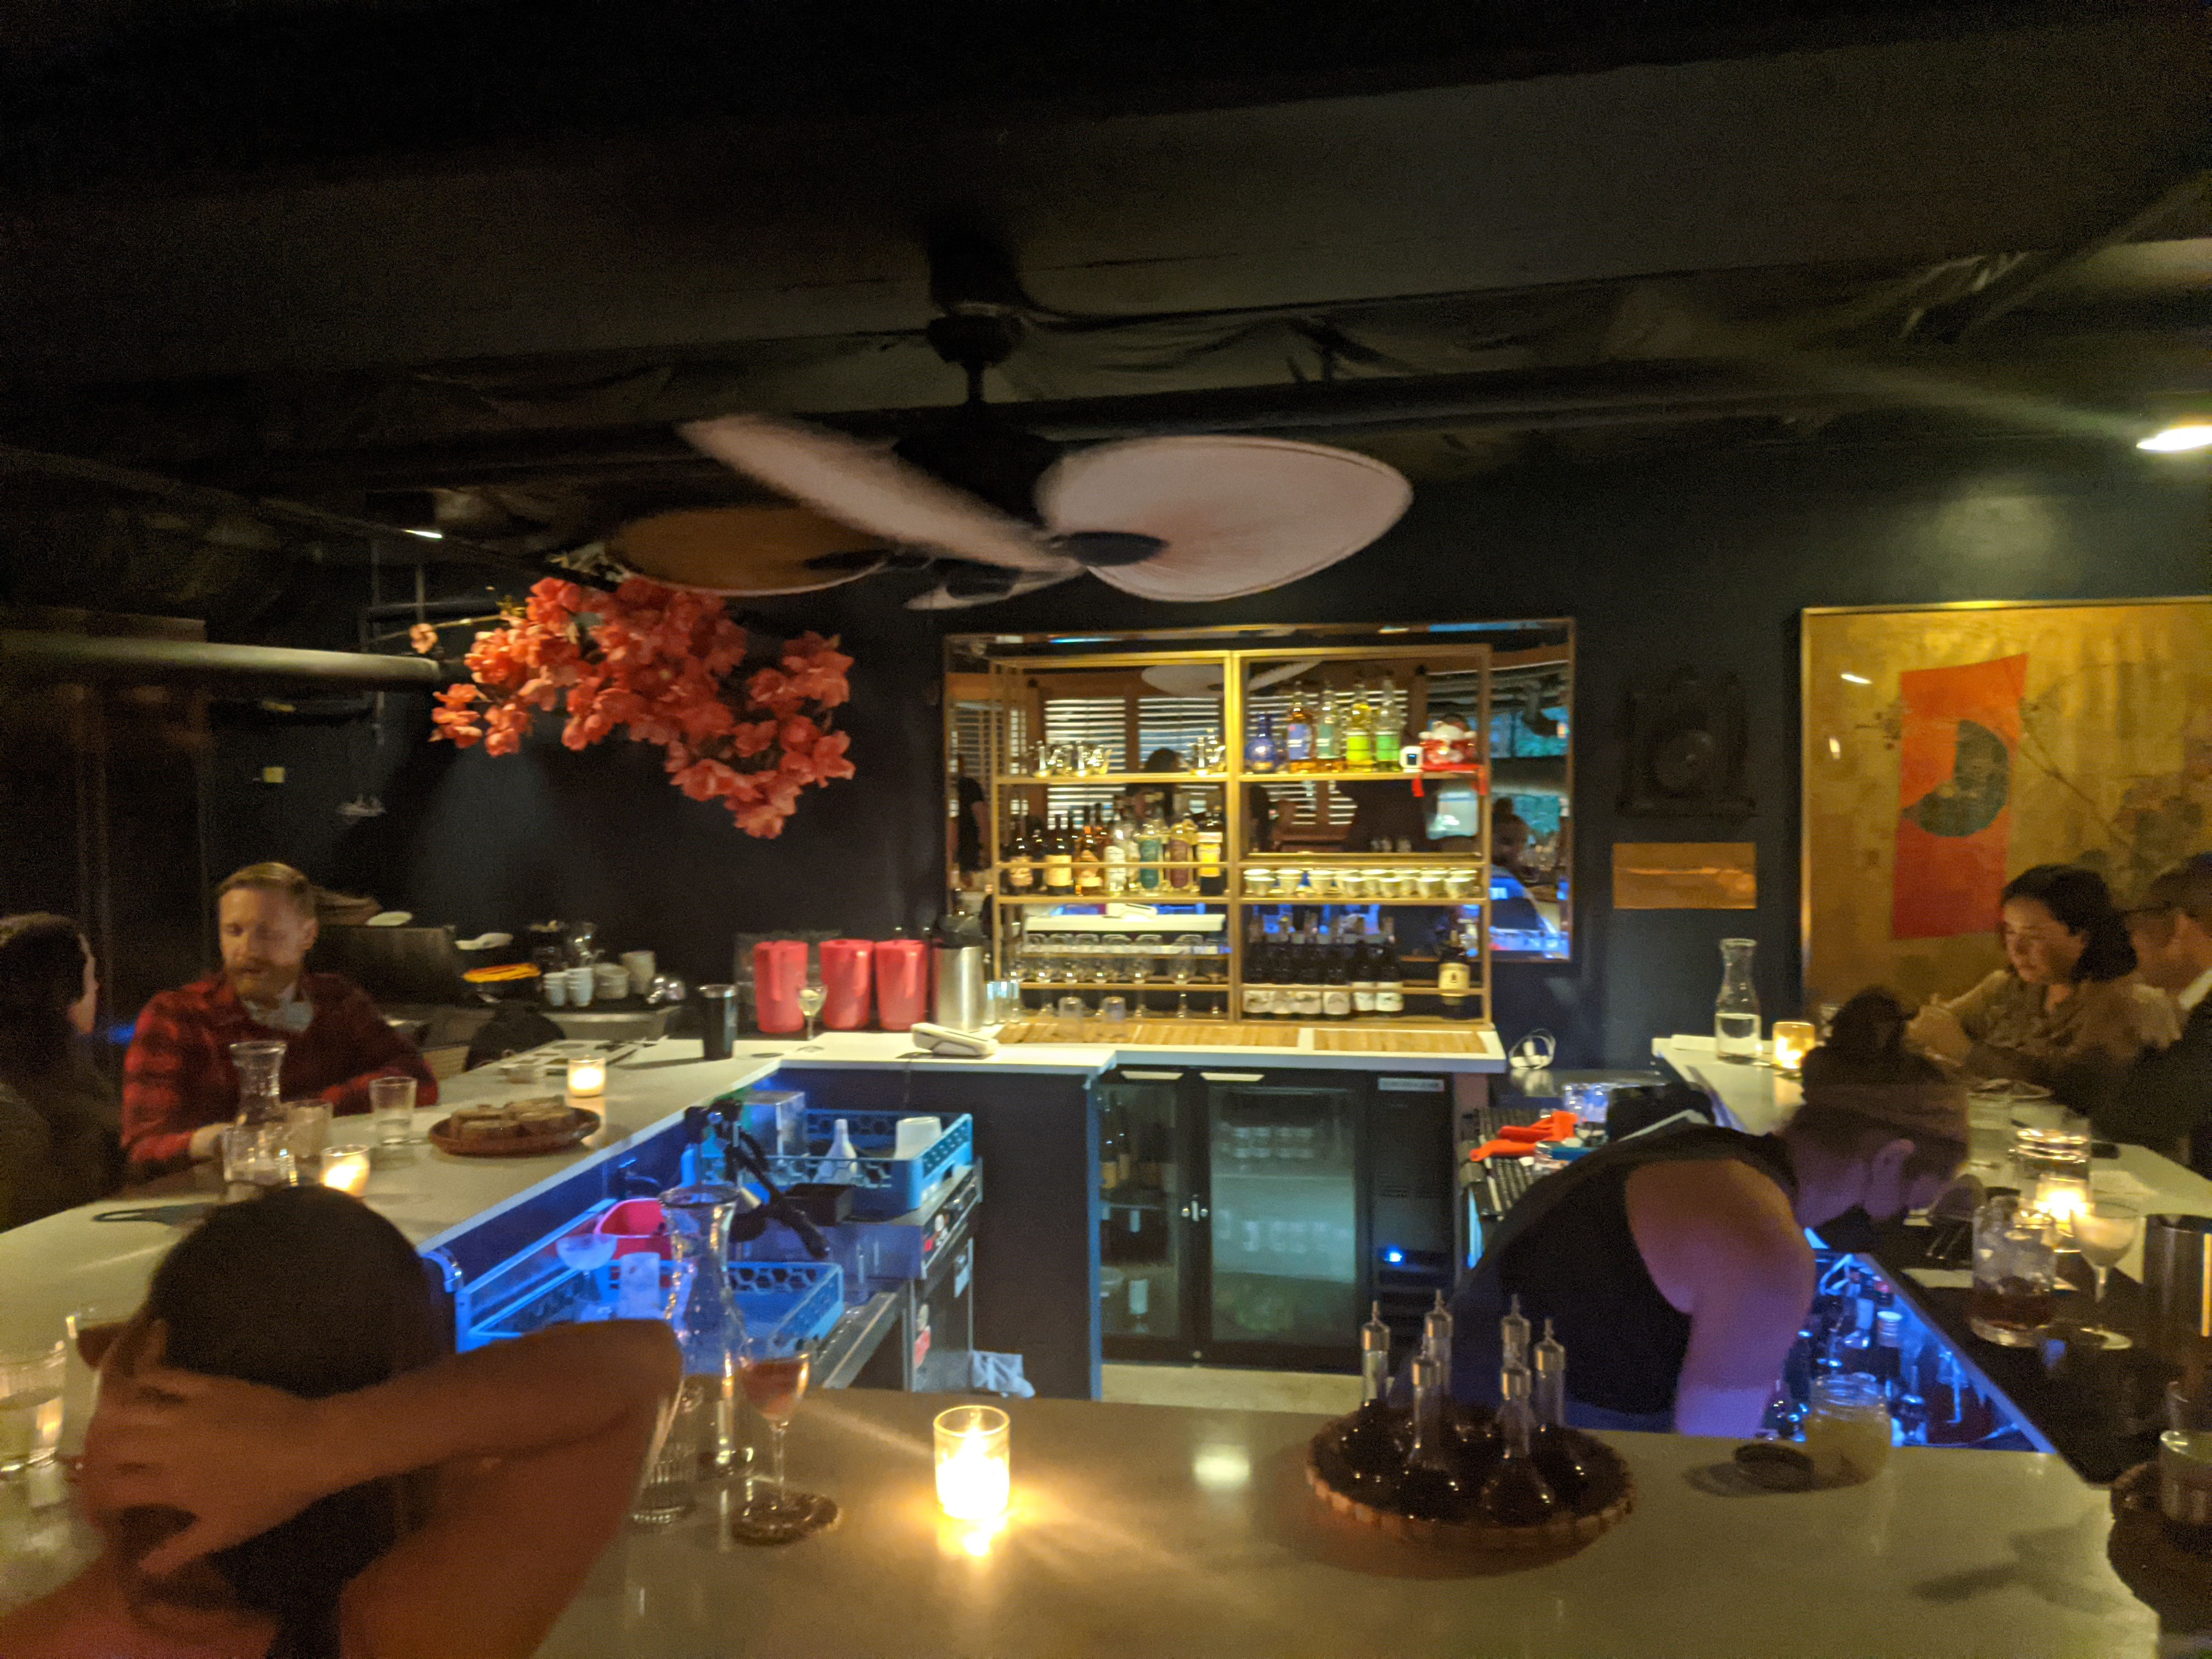 A square-shaped bar with white counters and candles. There are bright orange blossoms in the corner of the dimly-lit room.